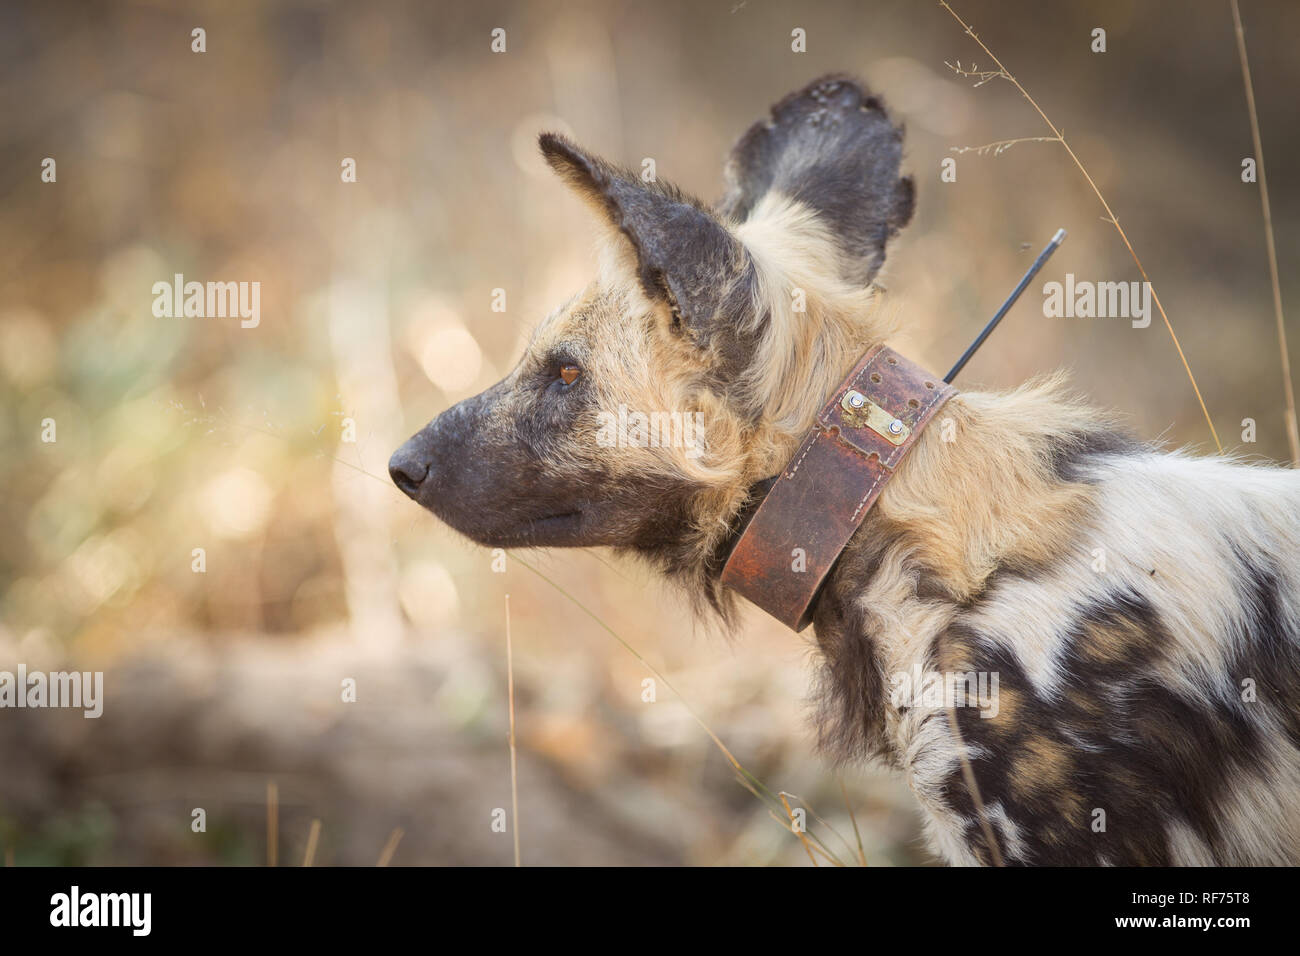 A tracking collar is used by scientists to monitor the movements of African Wild Dog, Lycoan Pictus, in Hwange National Park, Matabeleland, Zimbabwe. Stock Photo